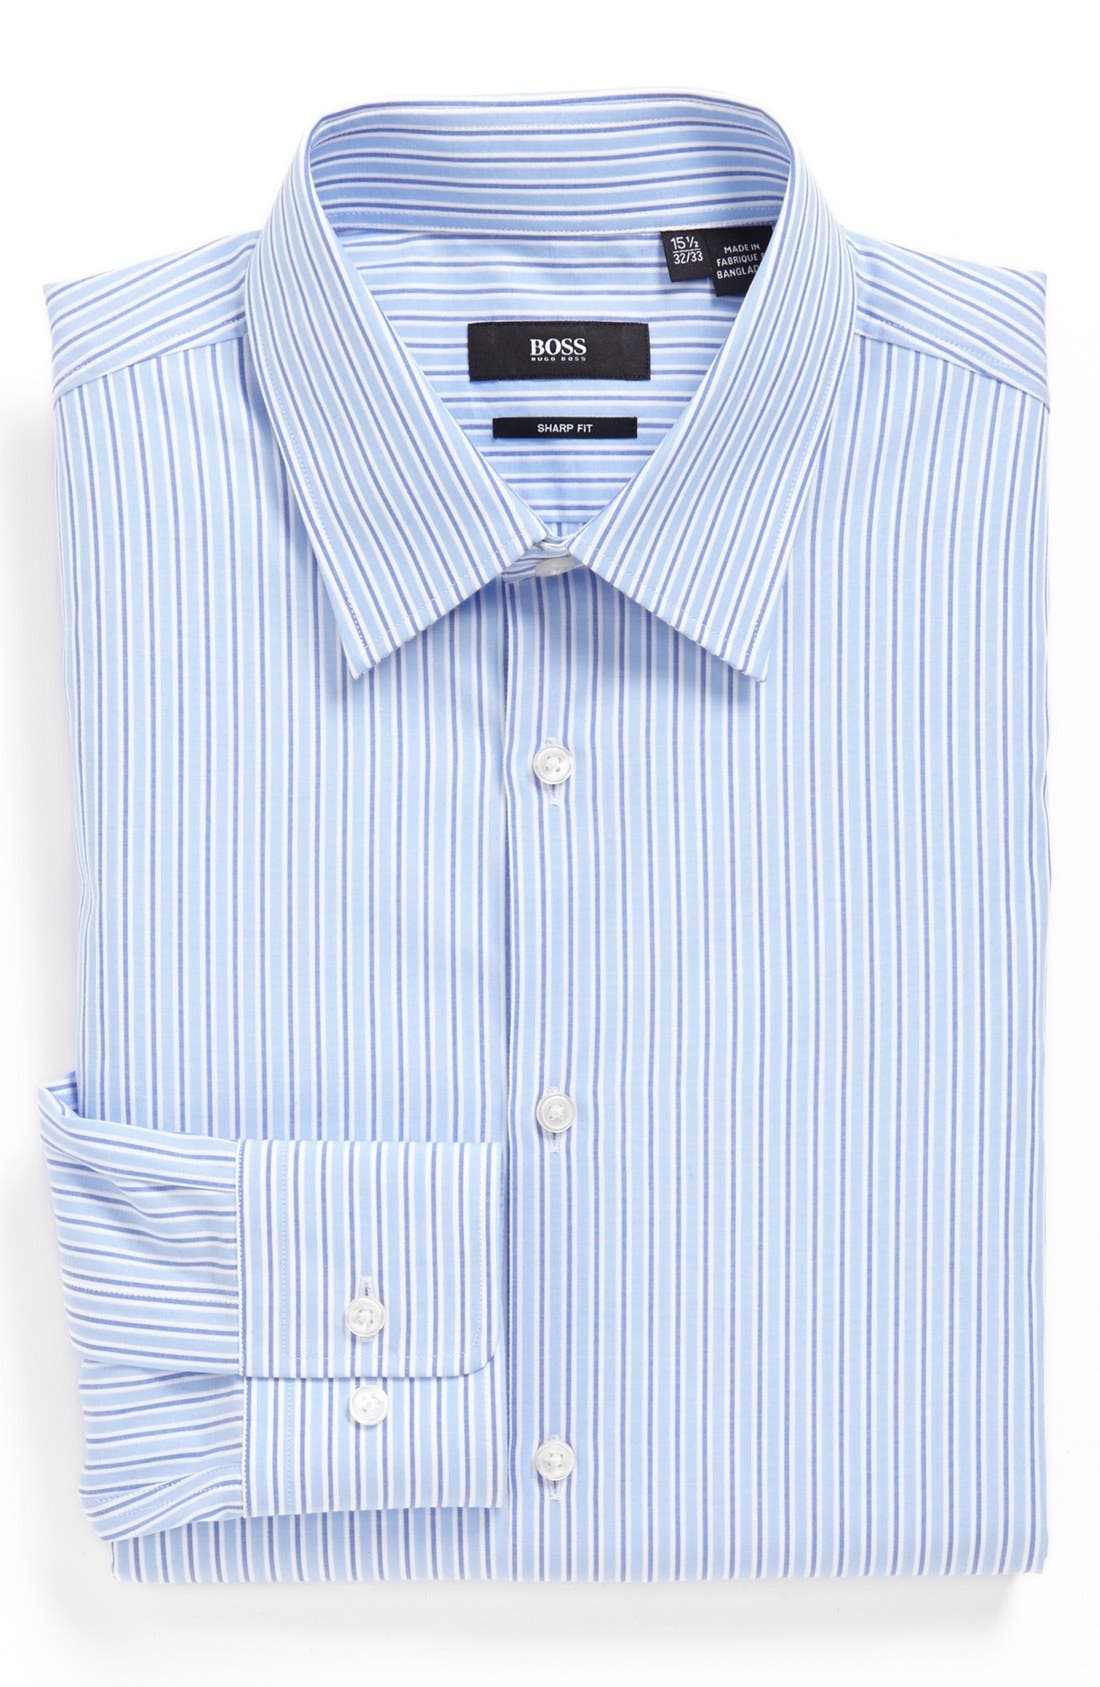 Alternate Image 1 Selected - BOSS HUGO BOSS 'Marlow' Sharp Fit Dress Shirt